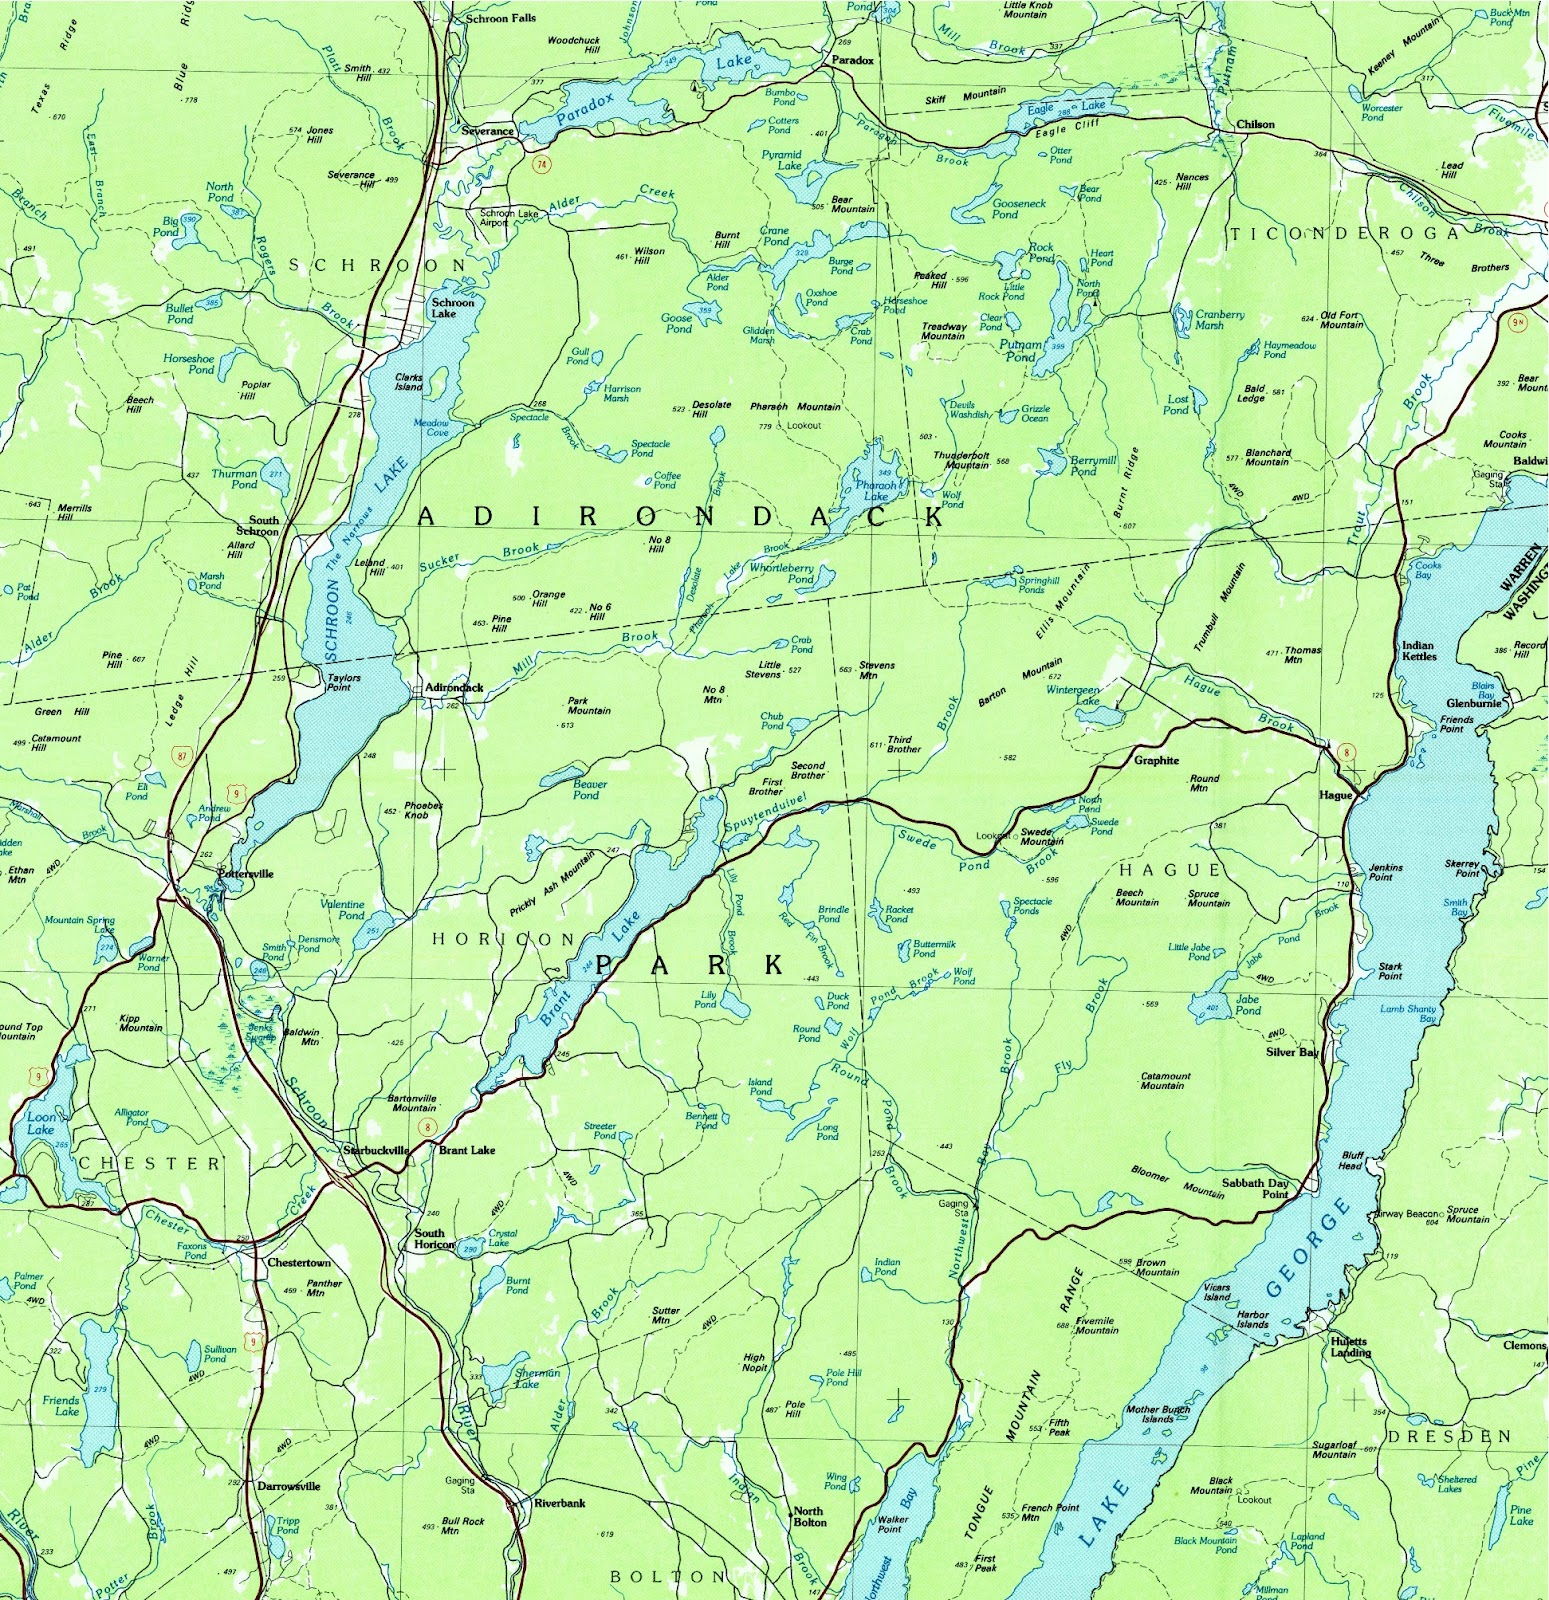 USGS Digitized Map Project Nearly Complete The Adirondack Almanack